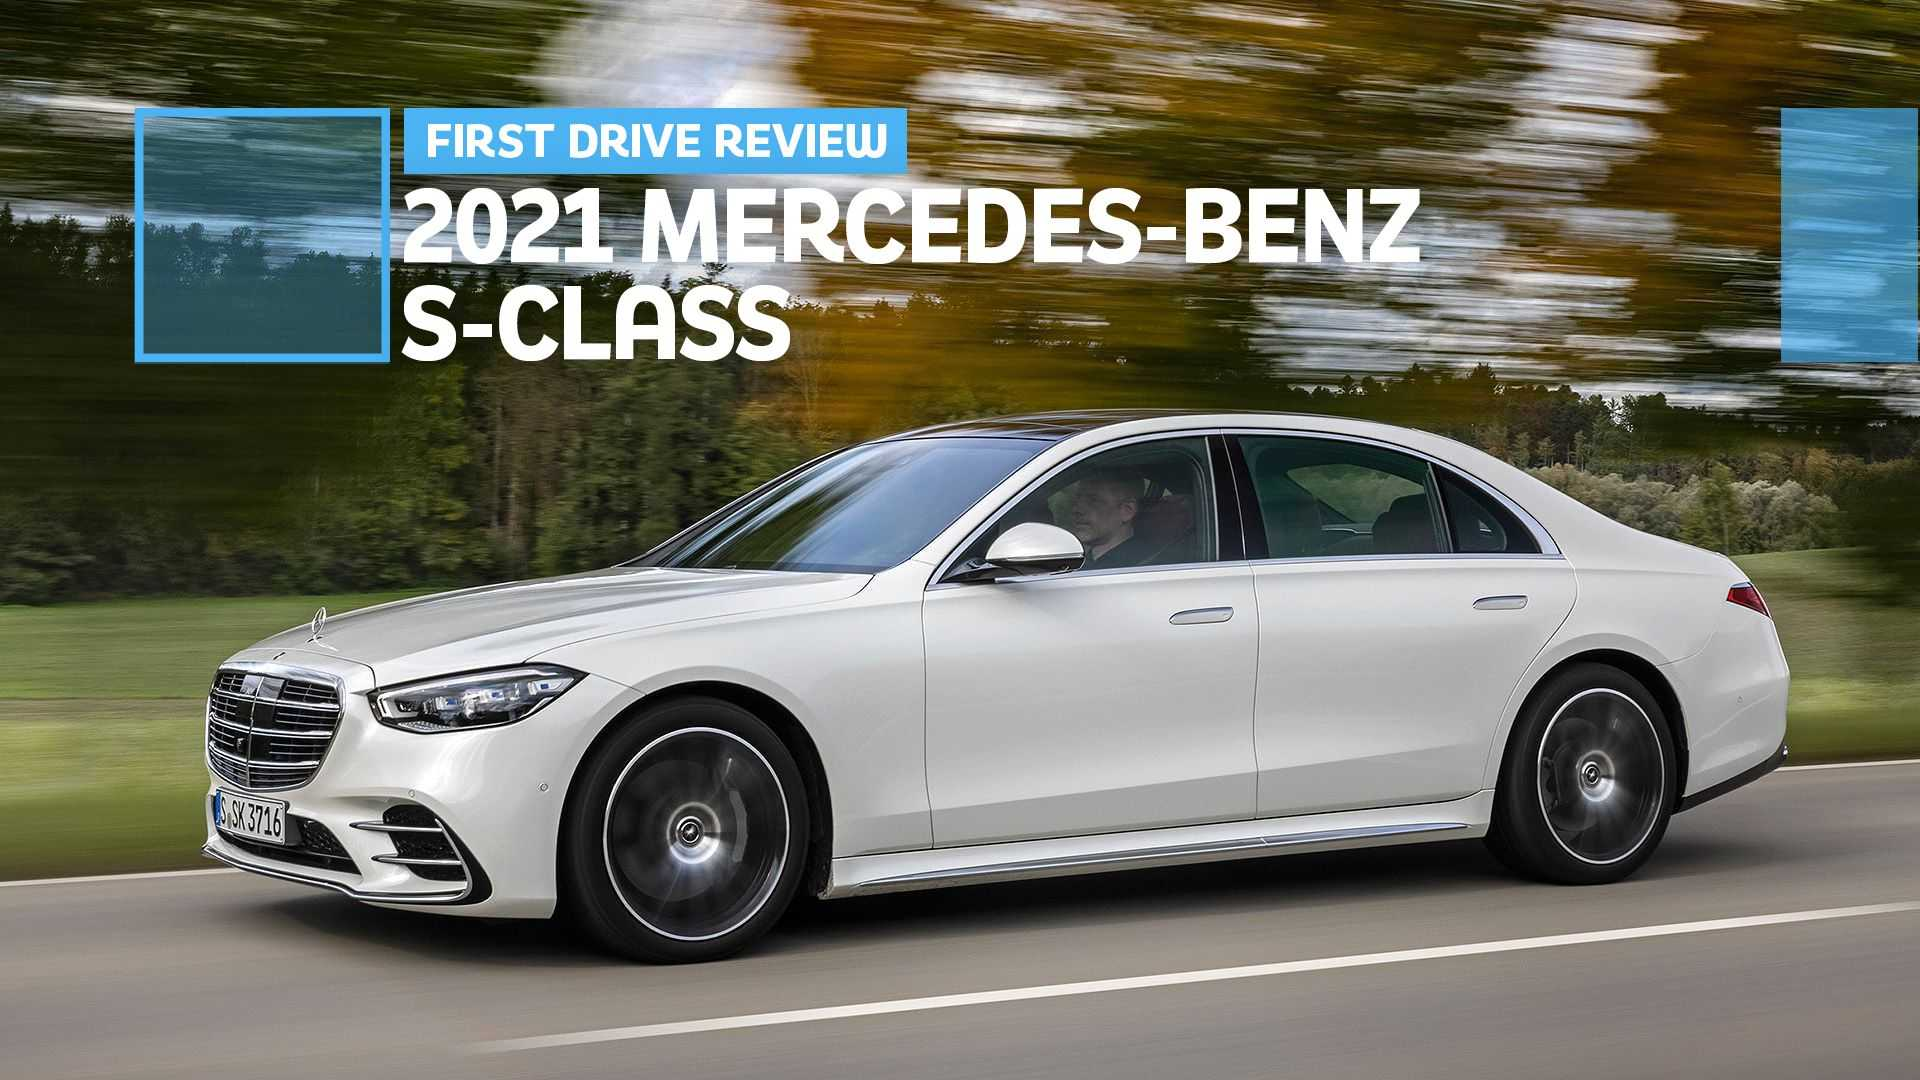 2021 Mercedes-Benz S-Class First Drive Review: The Future Is Here